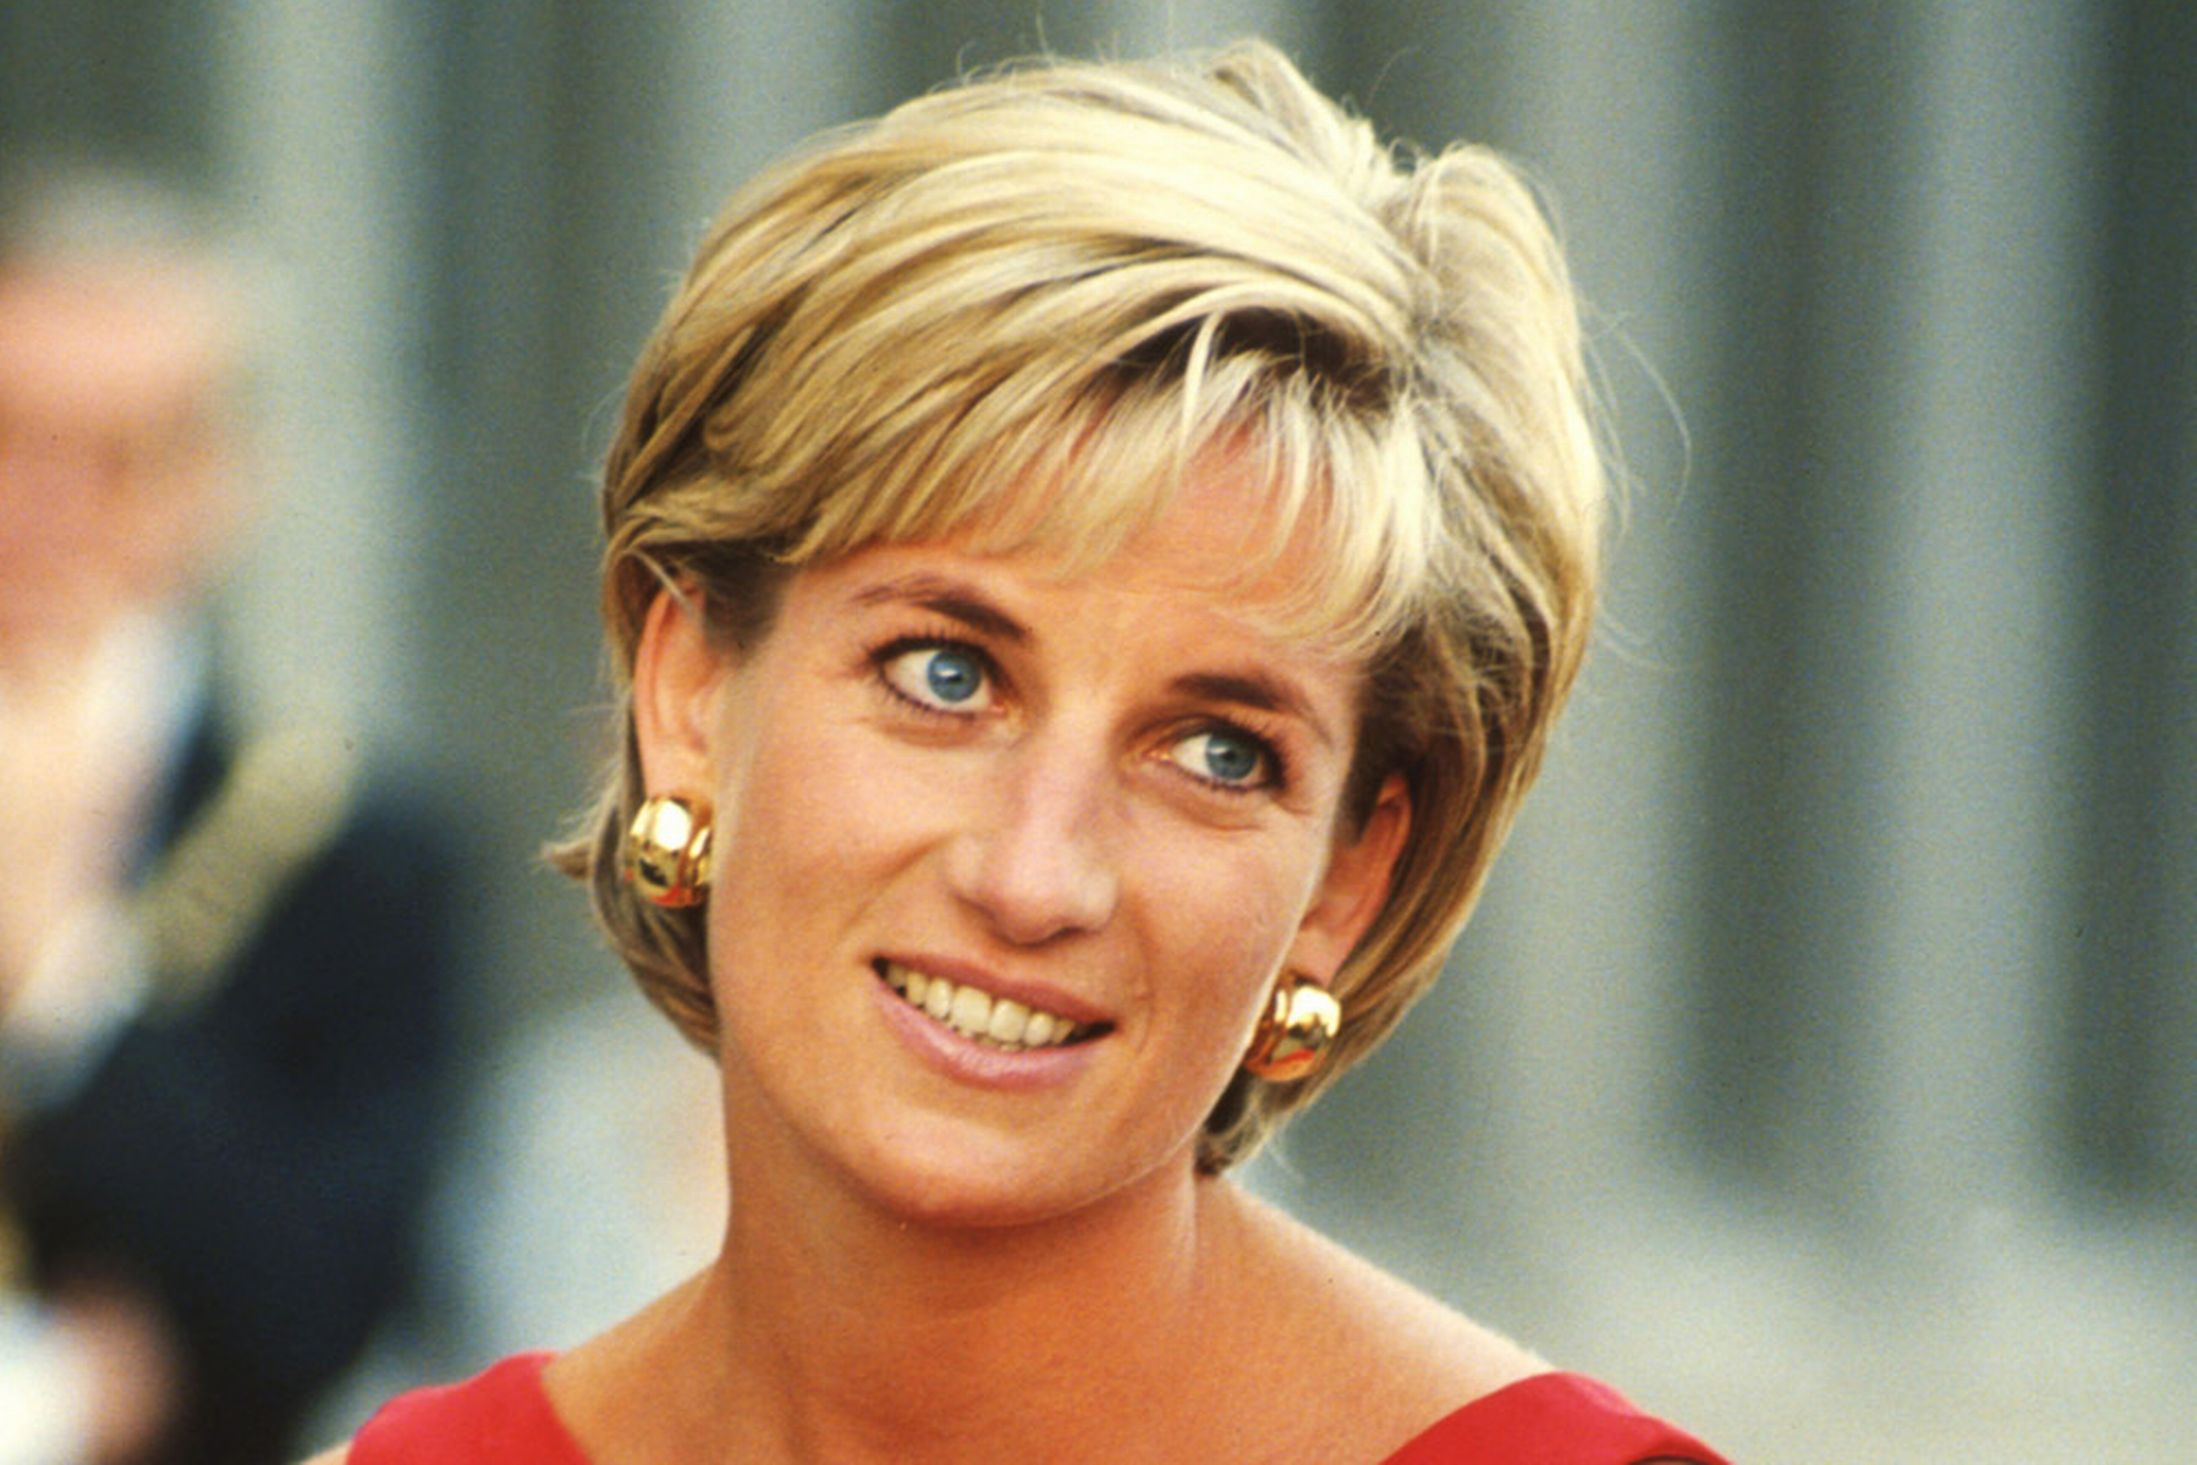 Princess of Wales Lady Diana Favorite Dress going to Auction ...: http://pakistan.jobz.pk/princess-of-wales-lady-diana-favorite-dress-going-to-auction/